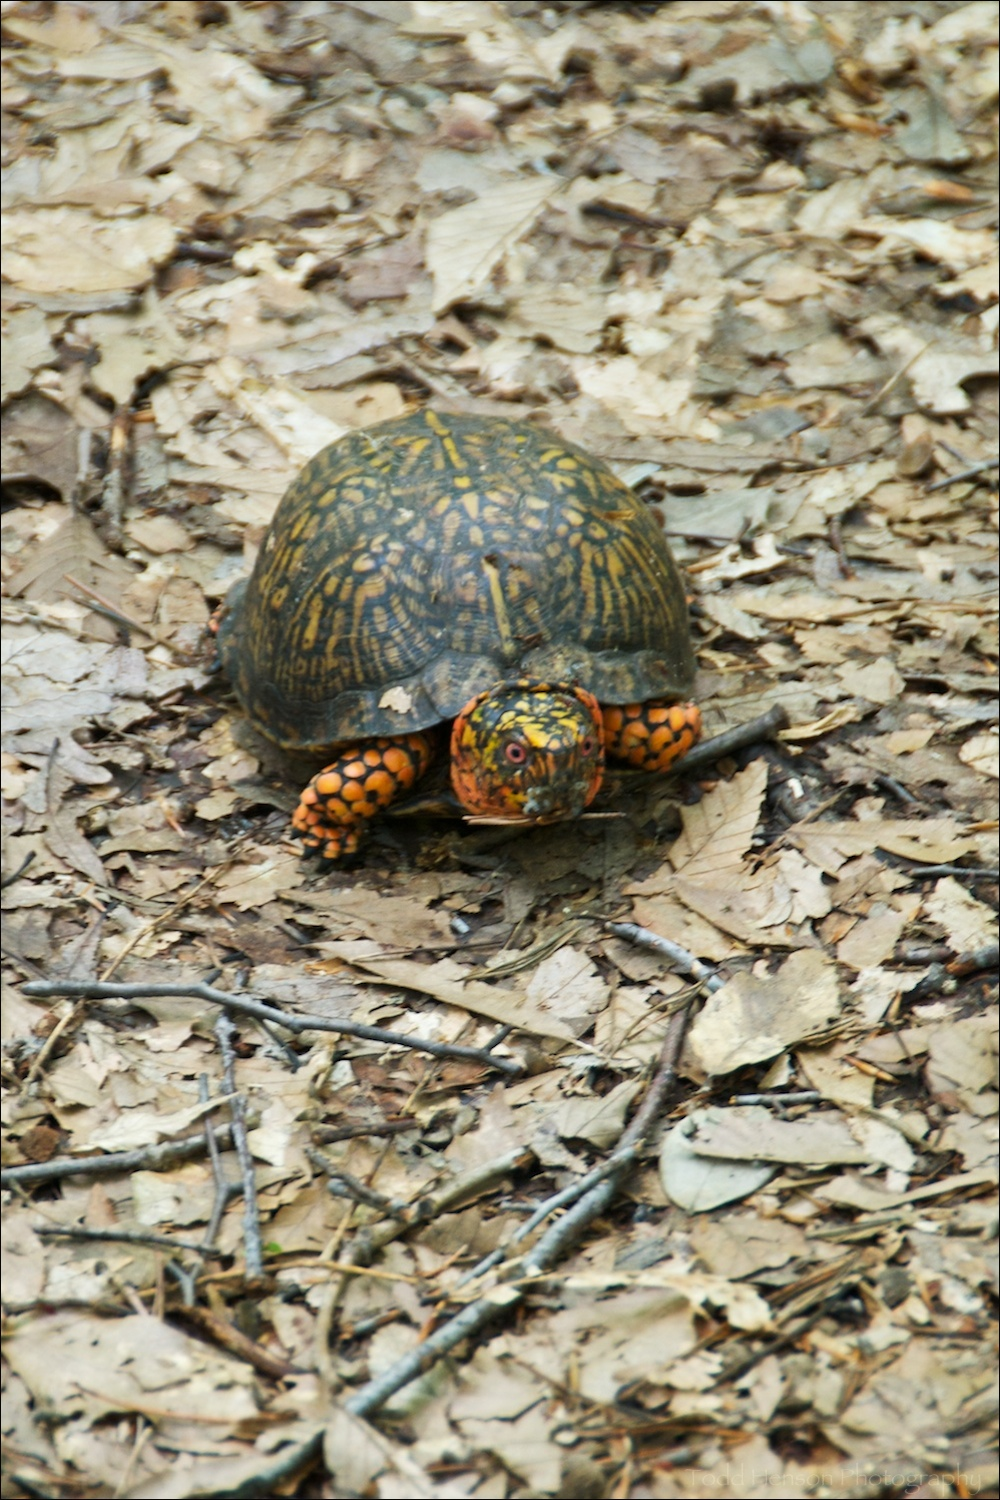 Slightly blurry photo of an Eastern Box Turtle on a trail in the woods.